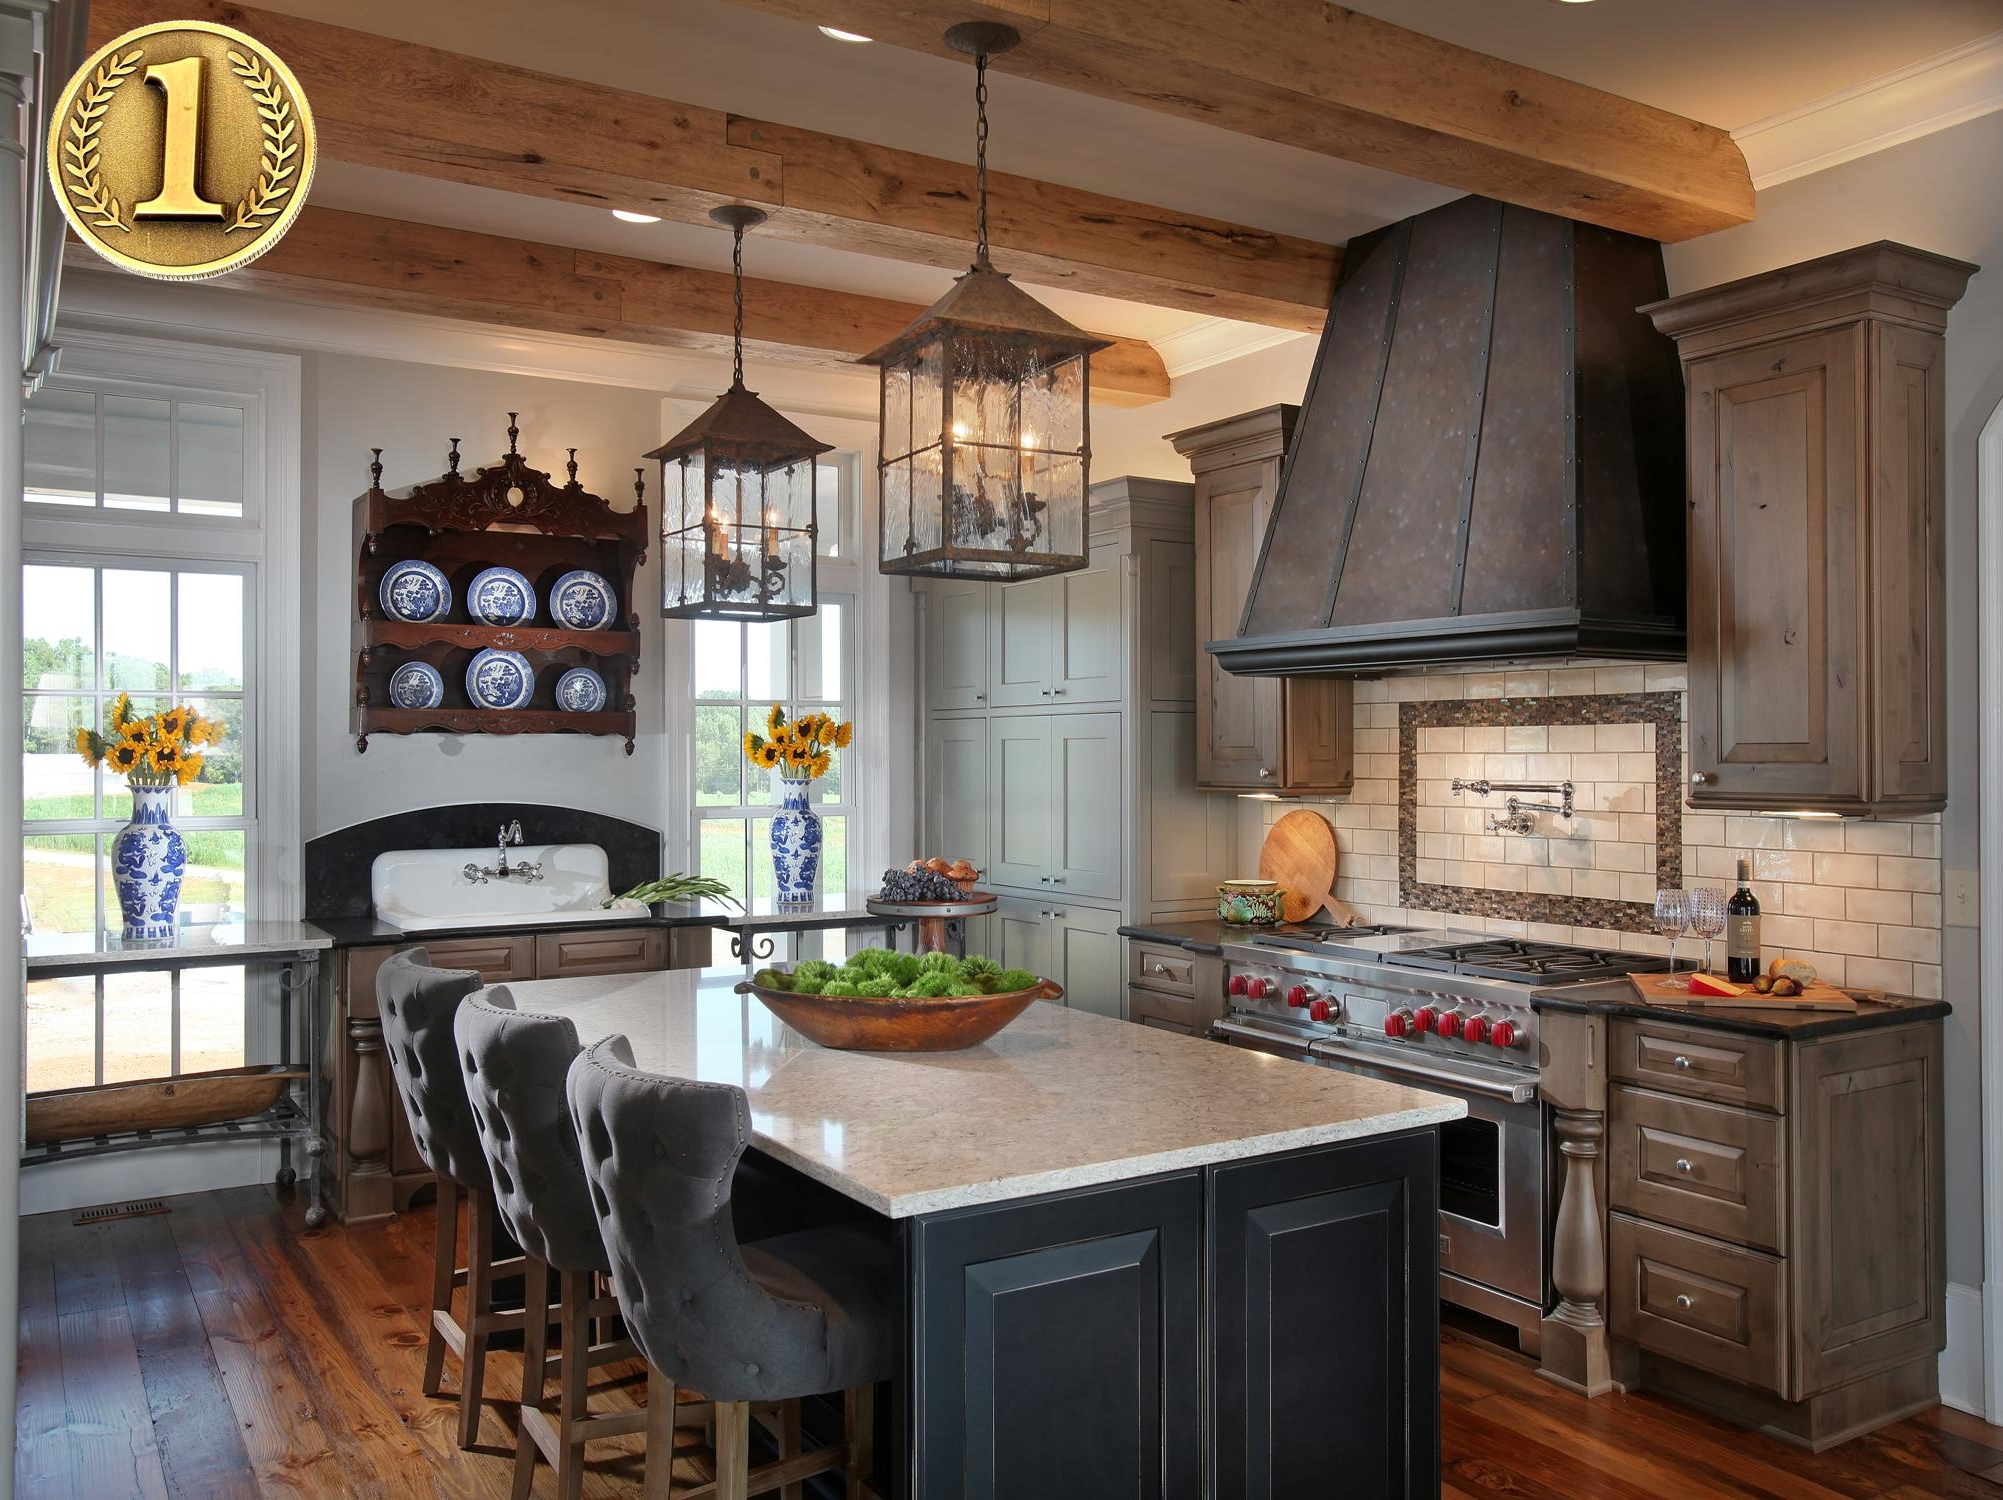 Awarded 1st Place in Traditional Kitchens - 18th Annual Design Awards